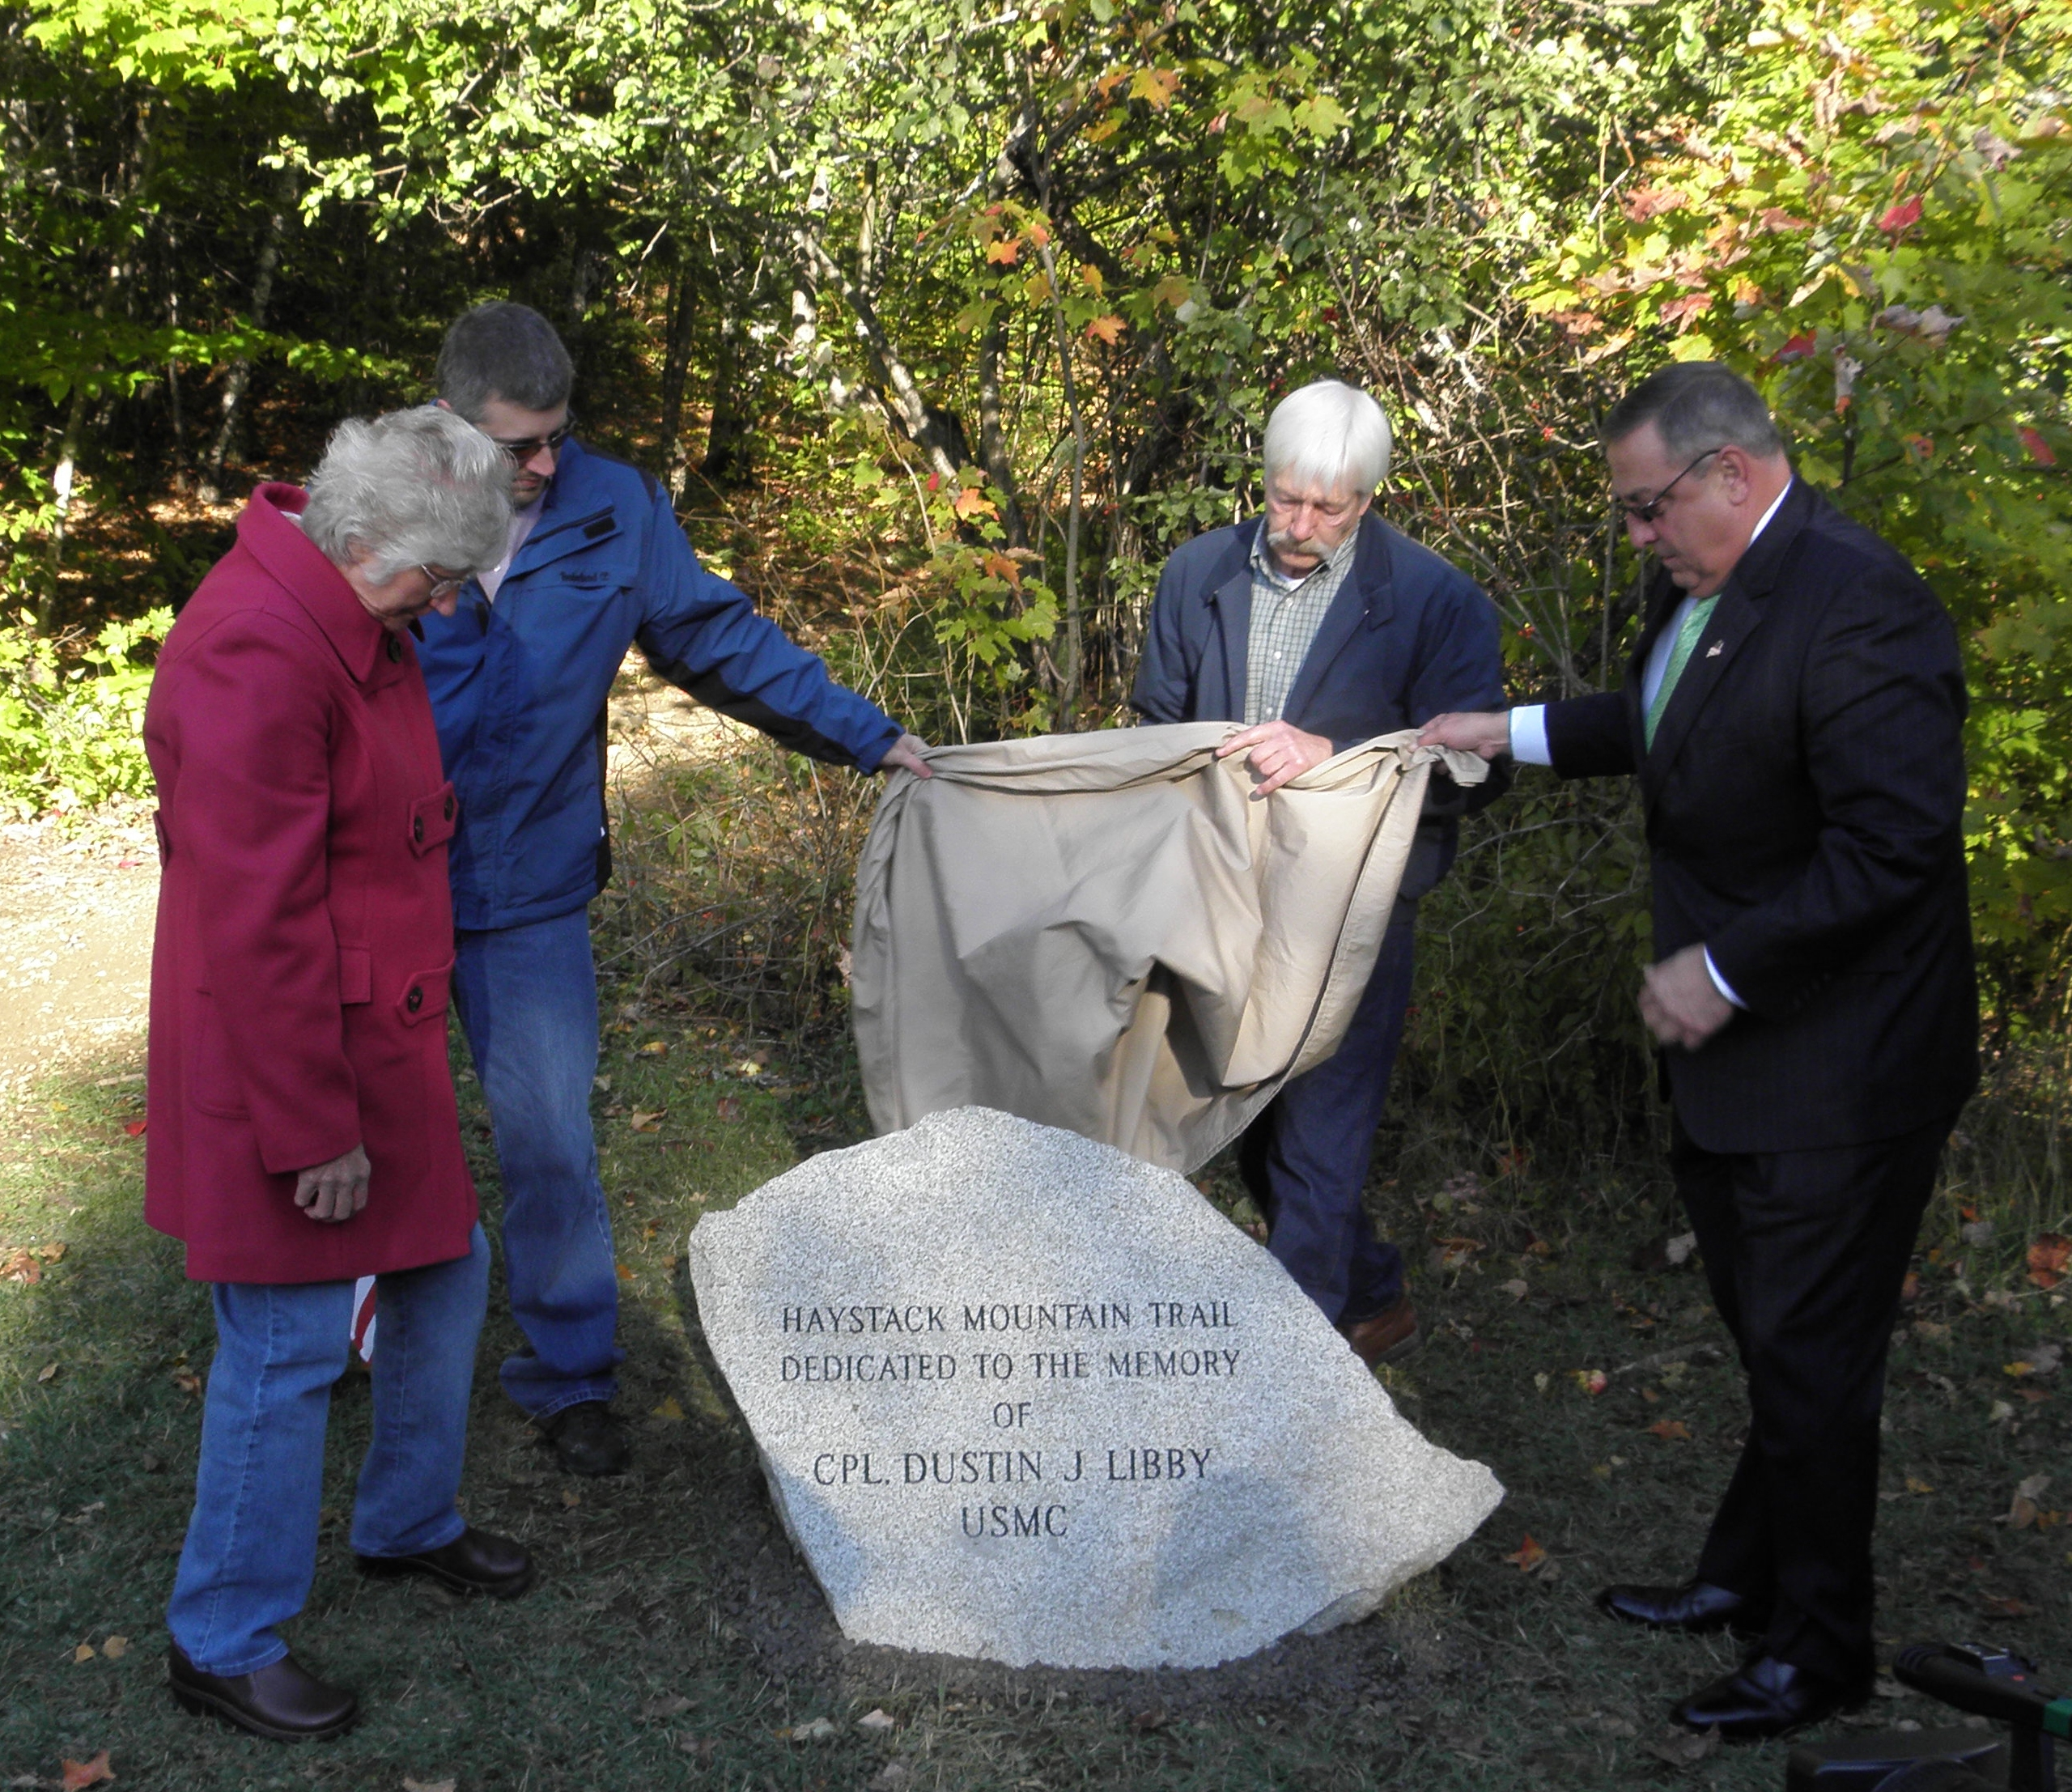 Governor Paul LePage (right) helps uncover a trailhead monument dedicated to Cpl. Dustin J. Libby, a Presque Isle native, who was killed in 2006 in Iraq while serving in the U.S. Marine Corps. Taking part in the unveiling ceremony were Libby's family (left to right), his mother, Geni Libby, brother Chris, and father, Judd Libby.